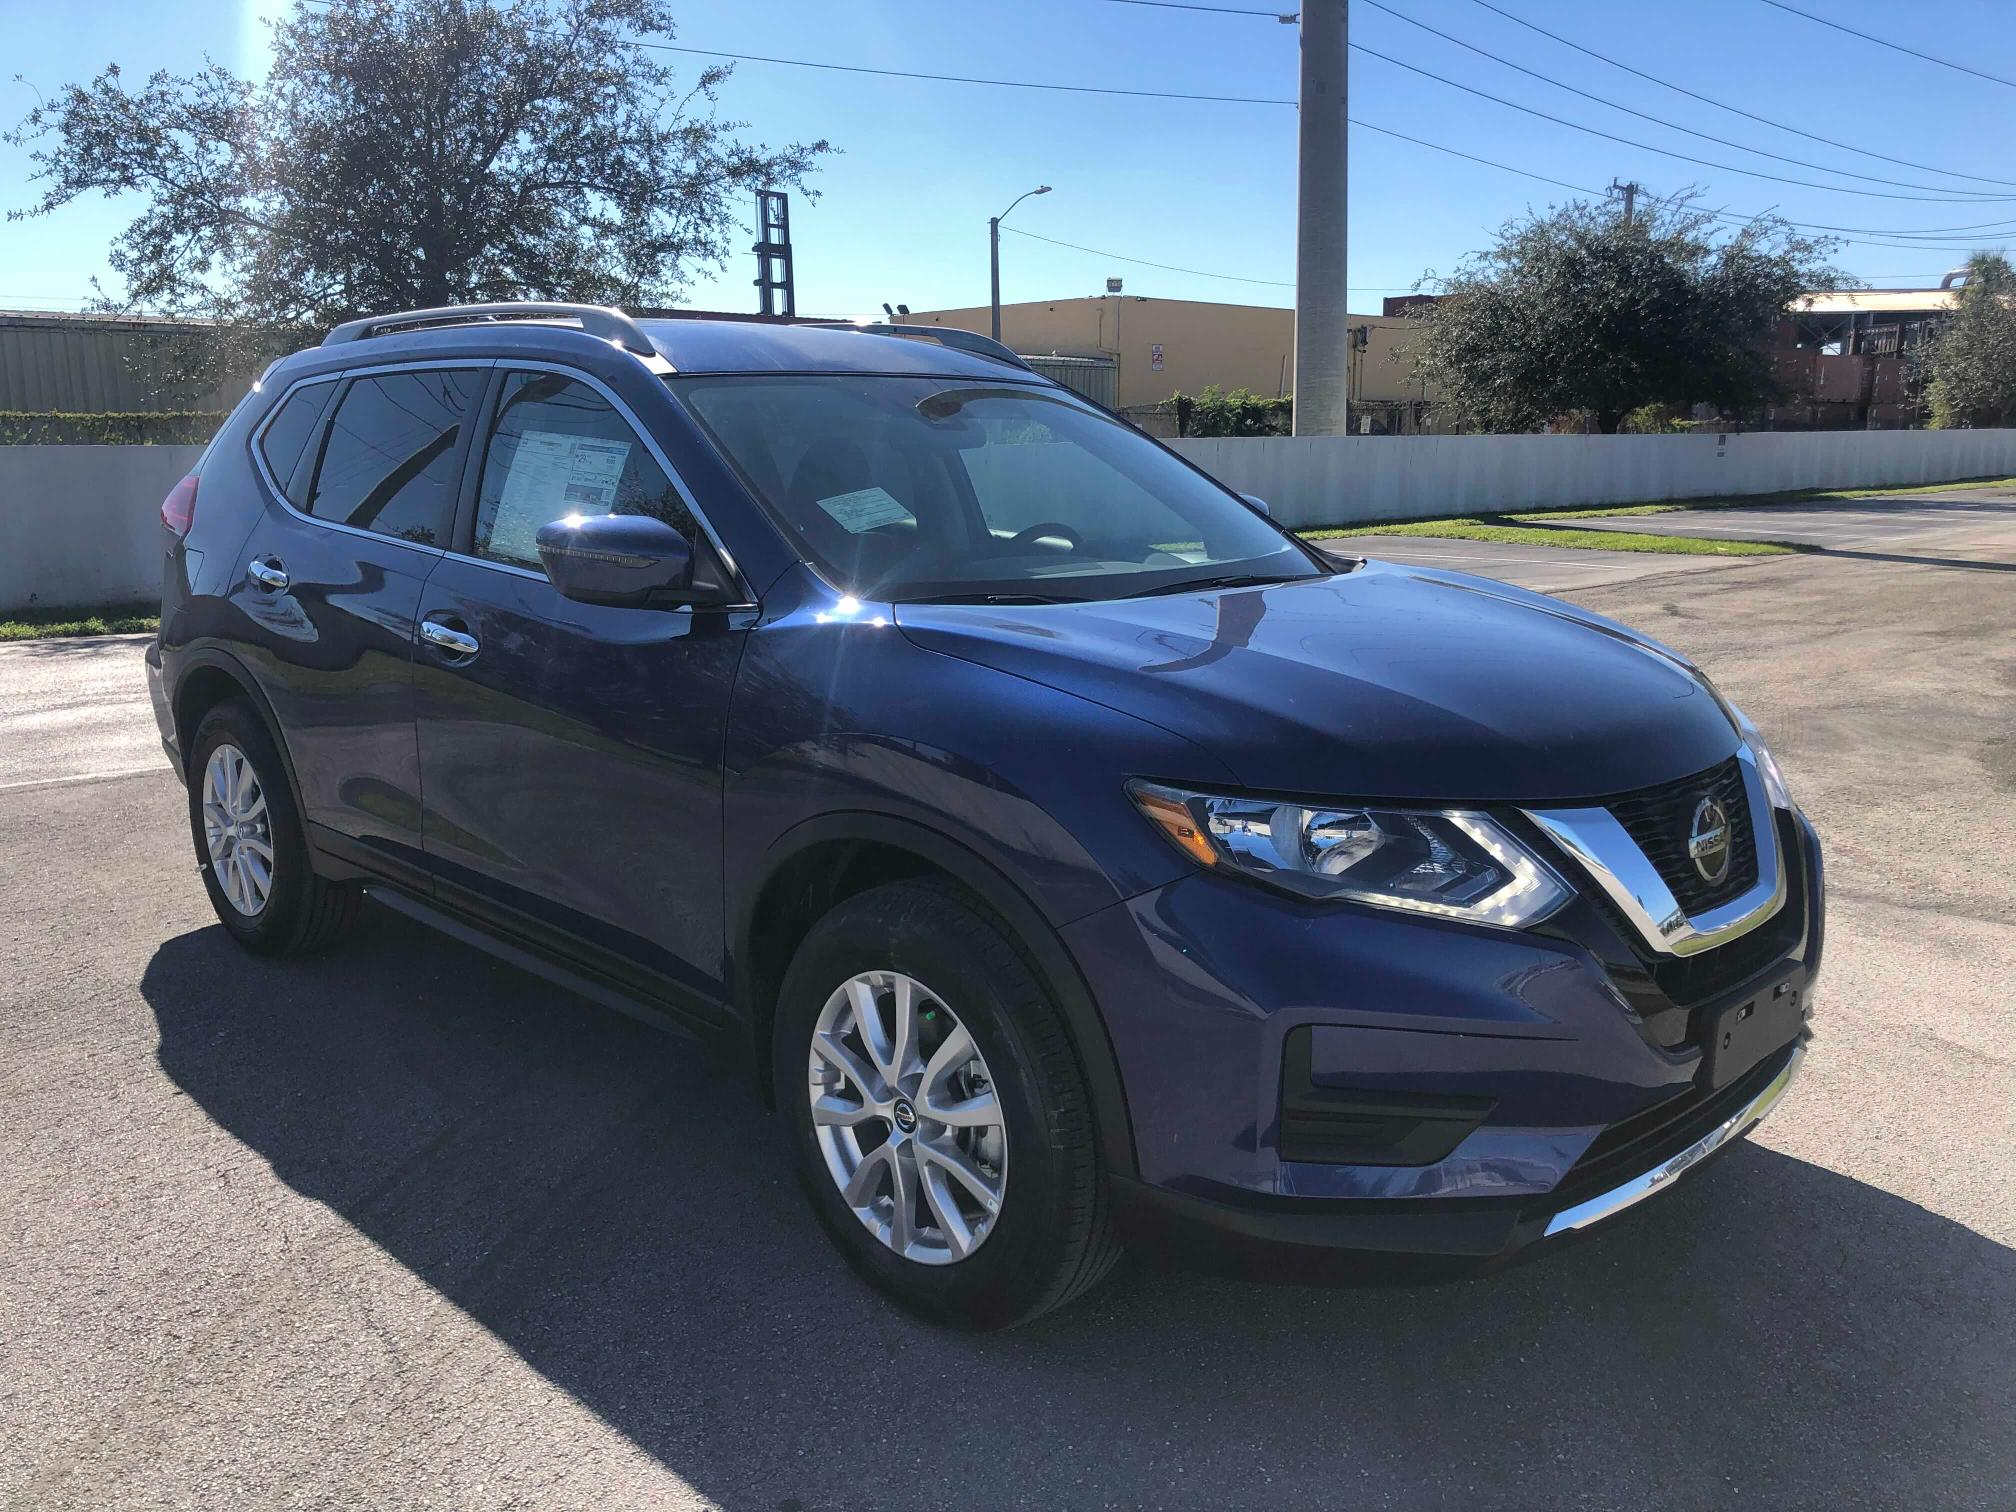 Salvage cars for sale at Miami, FL auction: 2020 Nissan Rogue S